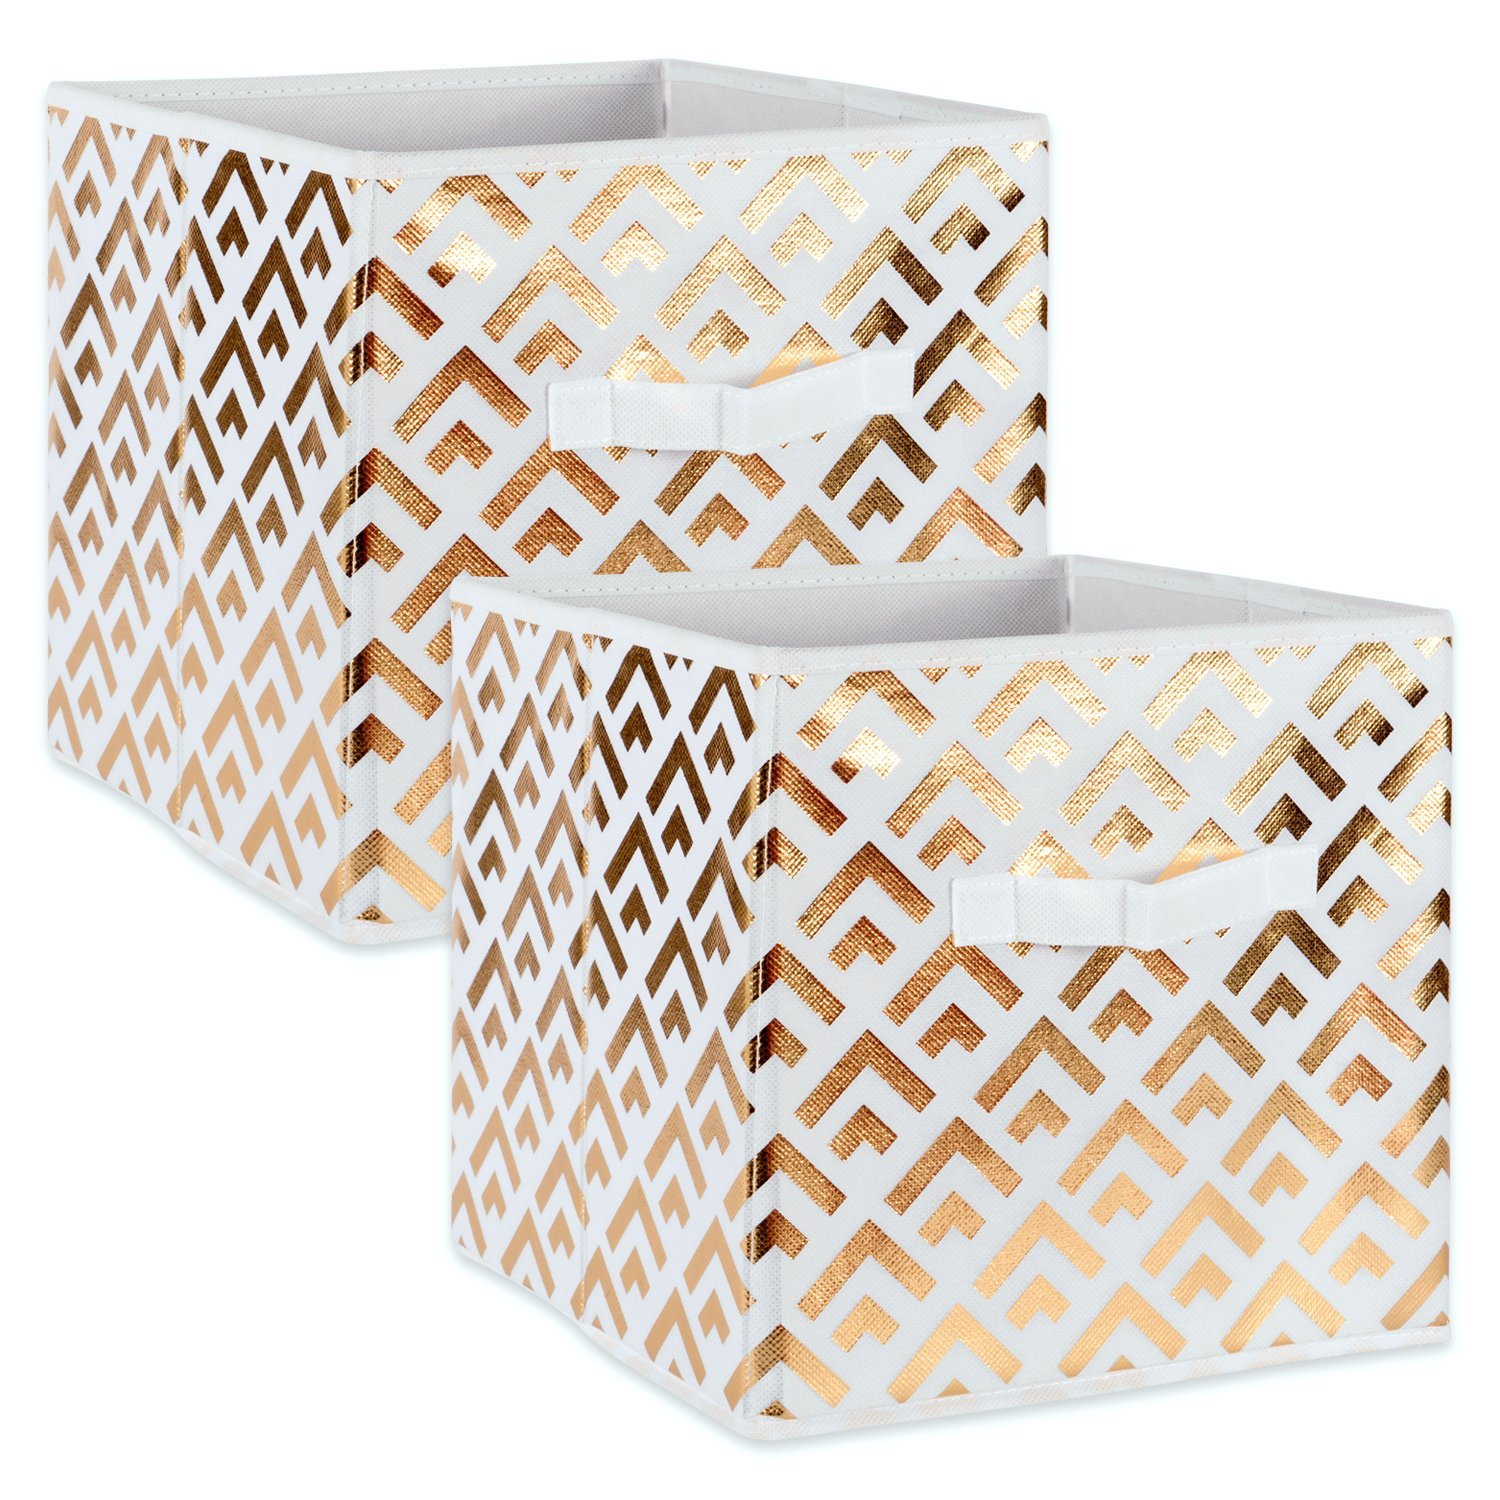 DII Fabric Storage Bins for Nursery, Offices, & Home Organization, Containers Are Made To Fit Standard Cube Organizers (13x13x13'') Double Diamond Gold - Set of 2